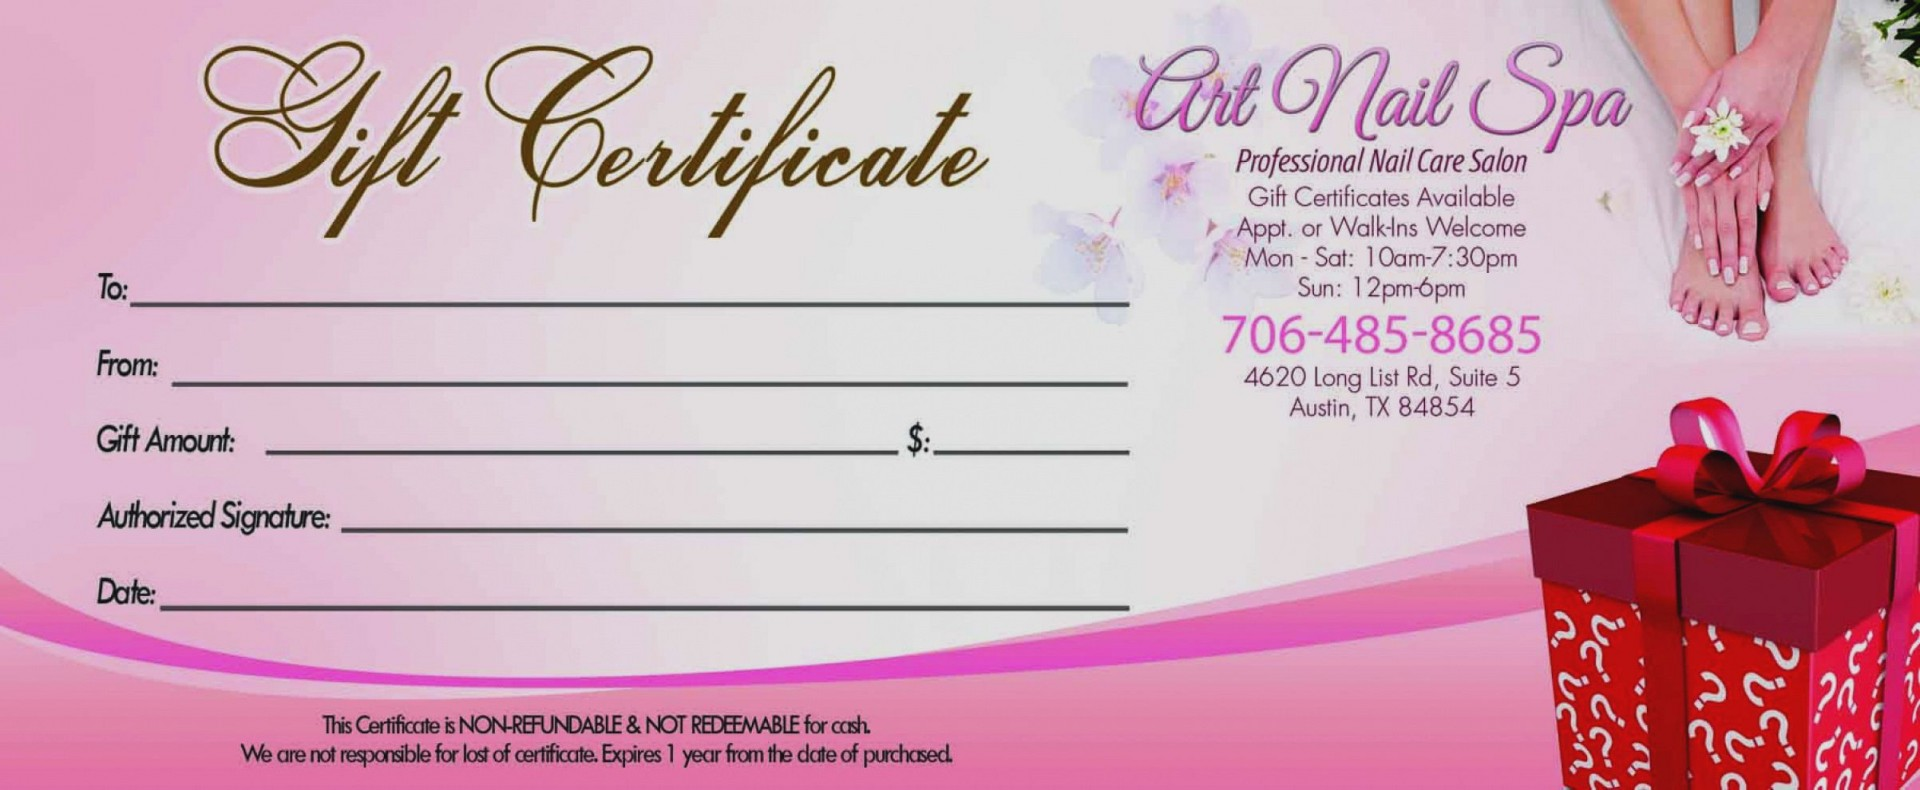 002 Fantastic Salon Gift Certificate Template Image 1920